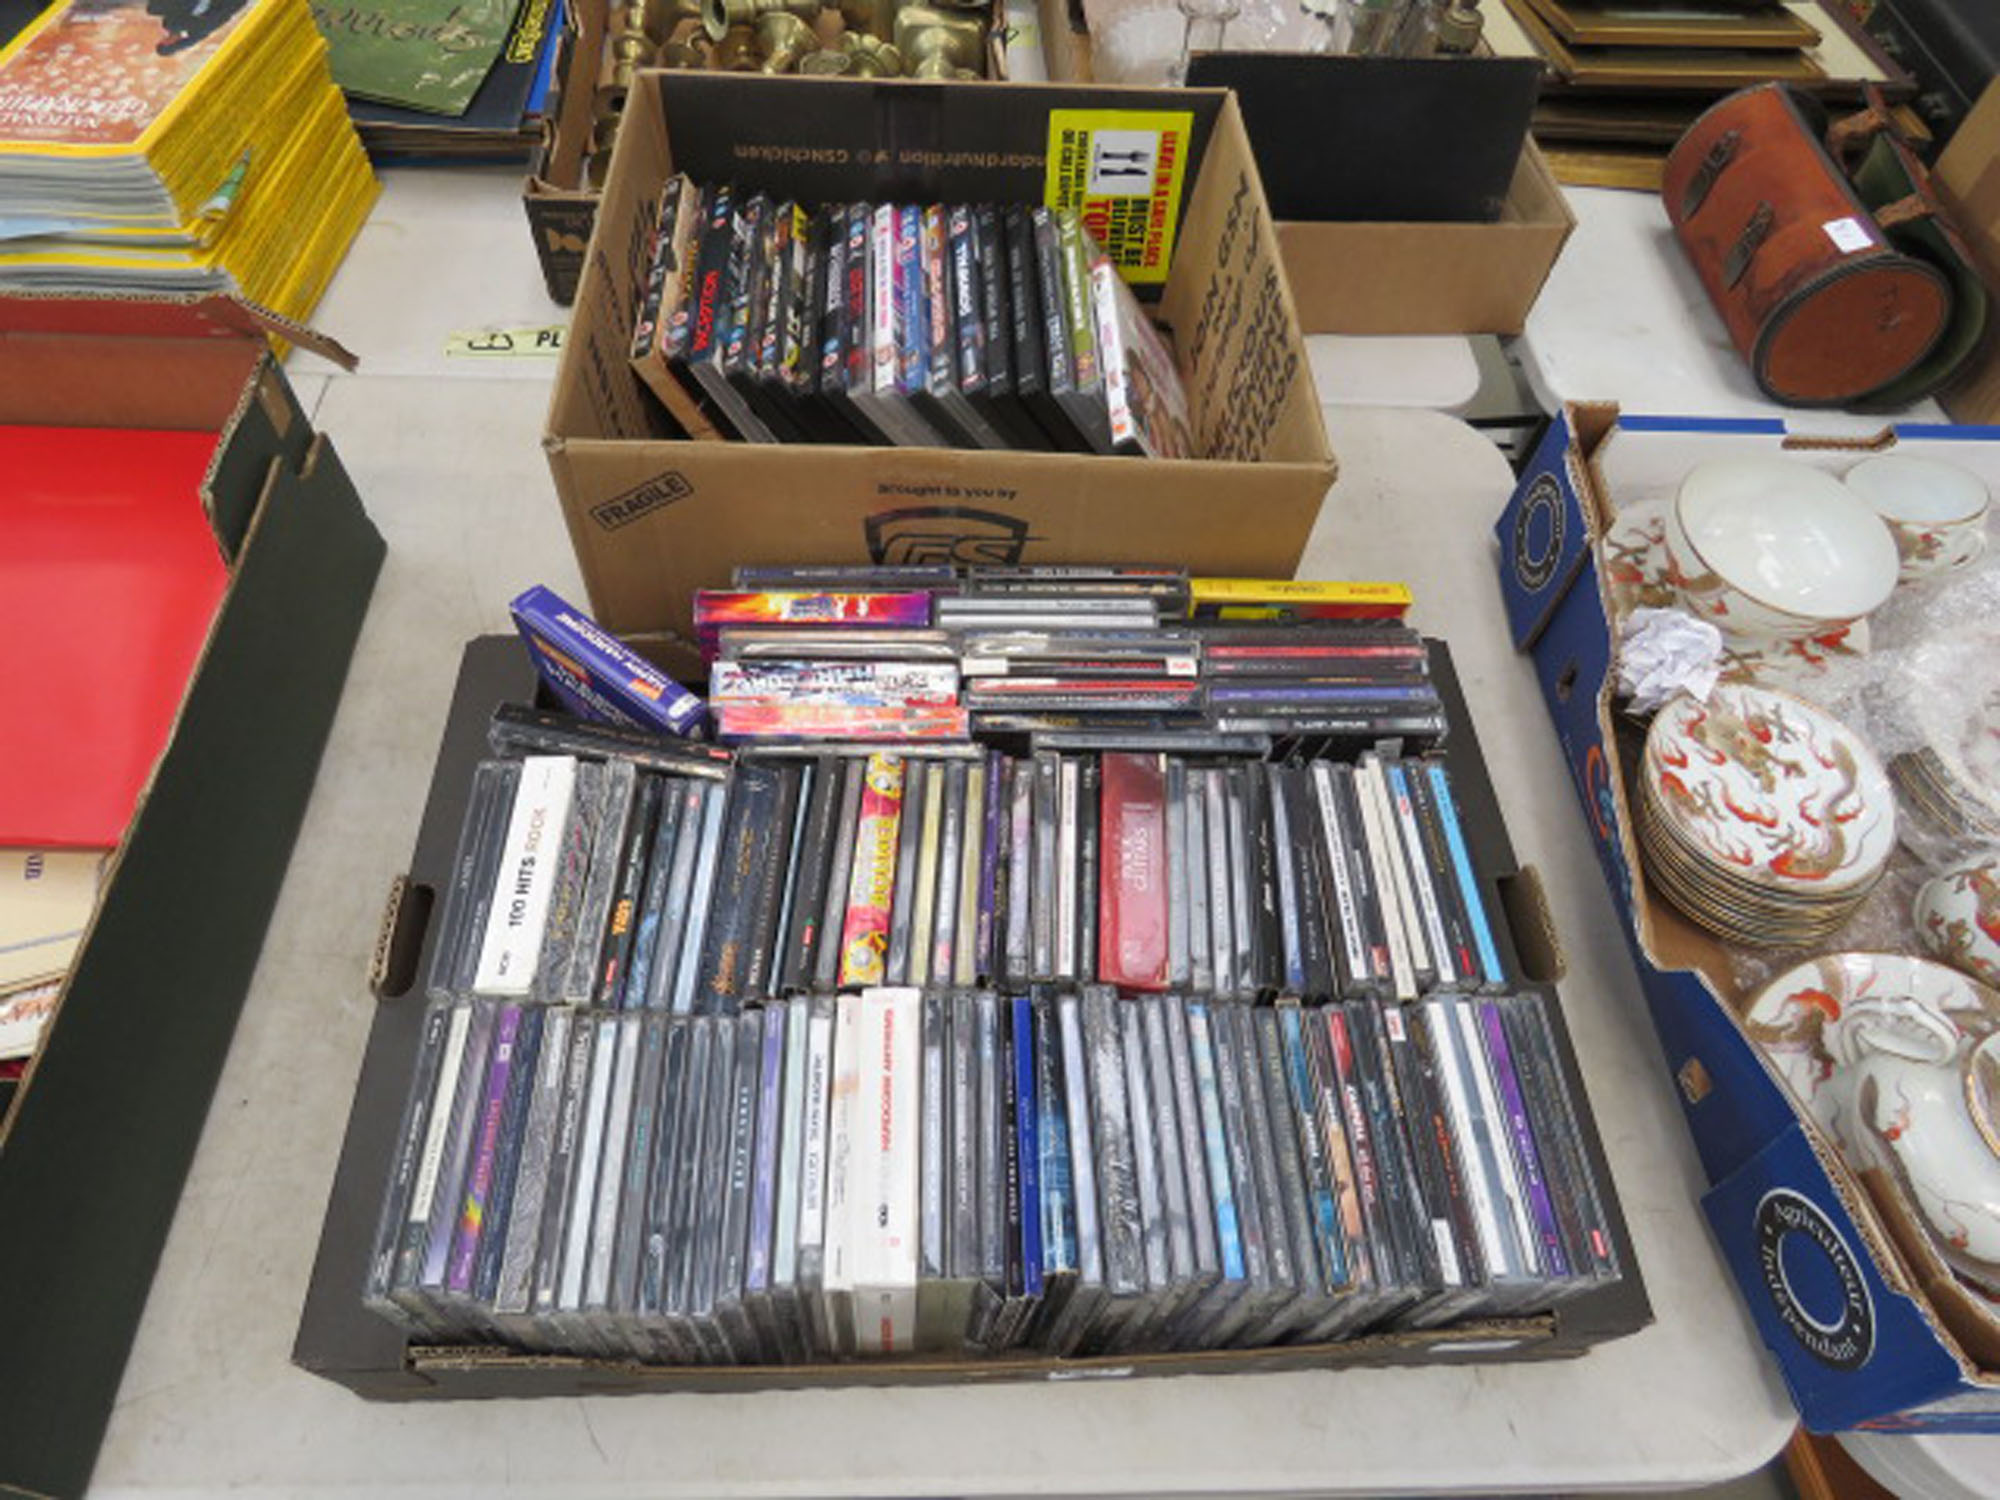 Two boxes containing DVDs and CDs